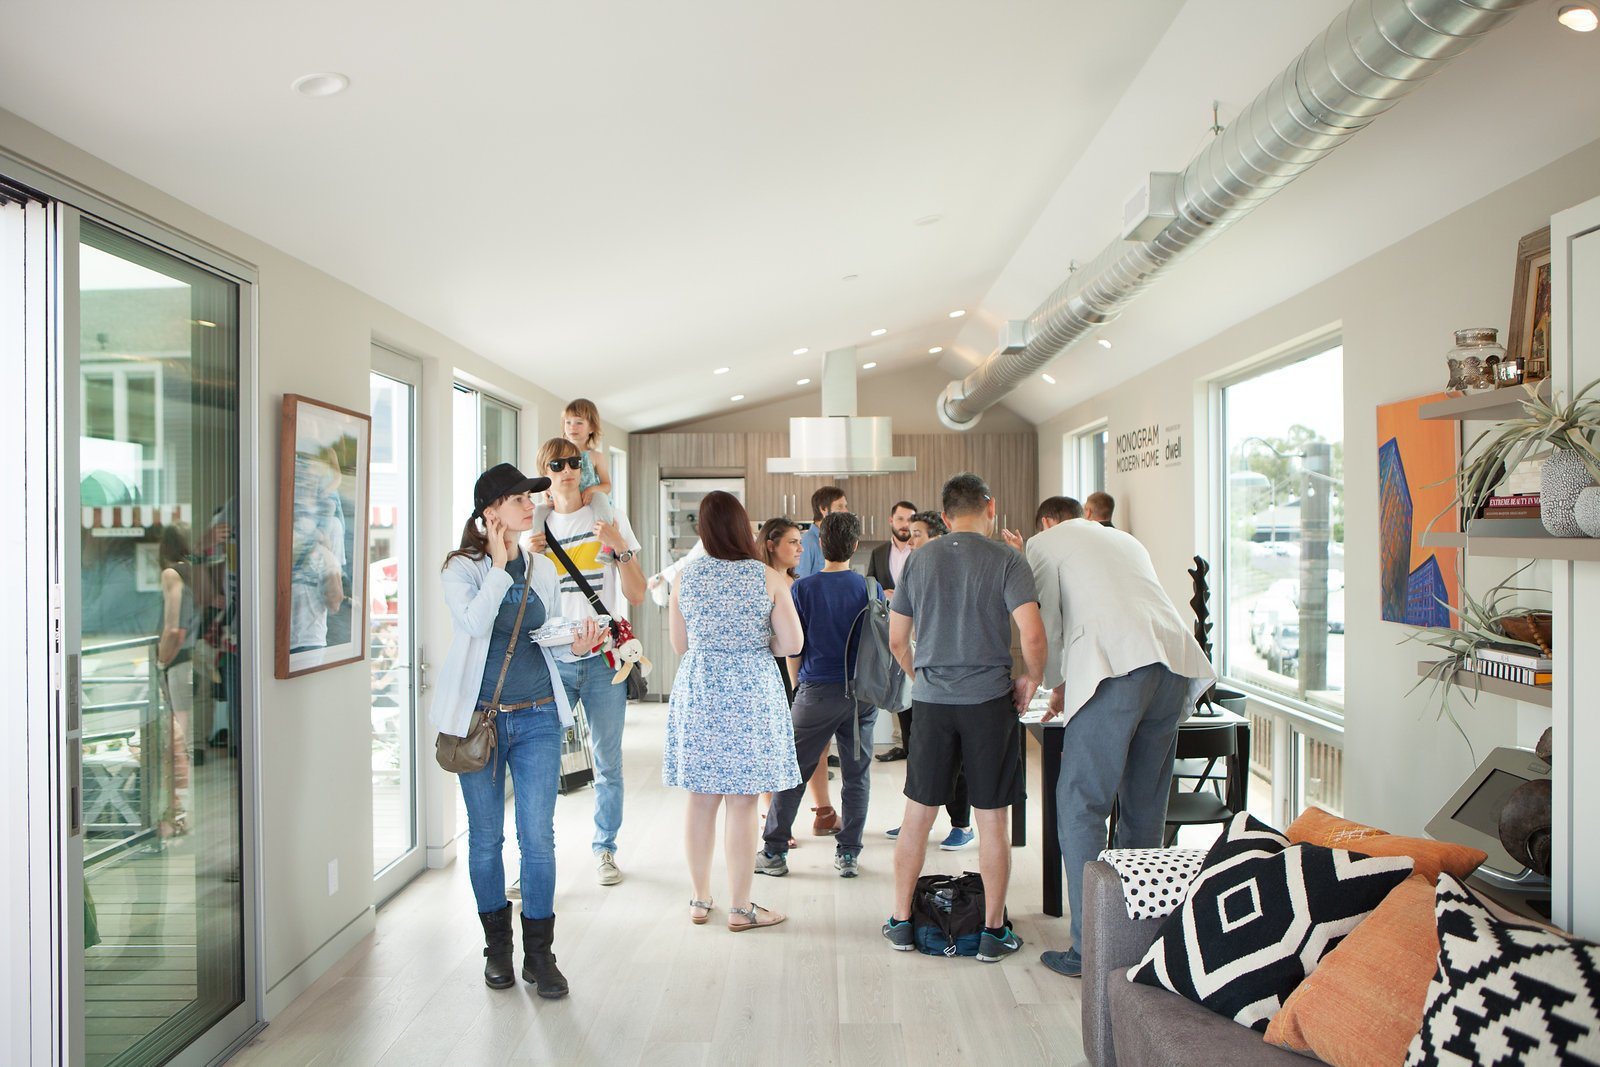 The open house returned for an encore showing on Sunday, June 12th at the Marin Country Mart. Monogram Modern Home Tour Takes On the West Coast - Photo 8 of 9